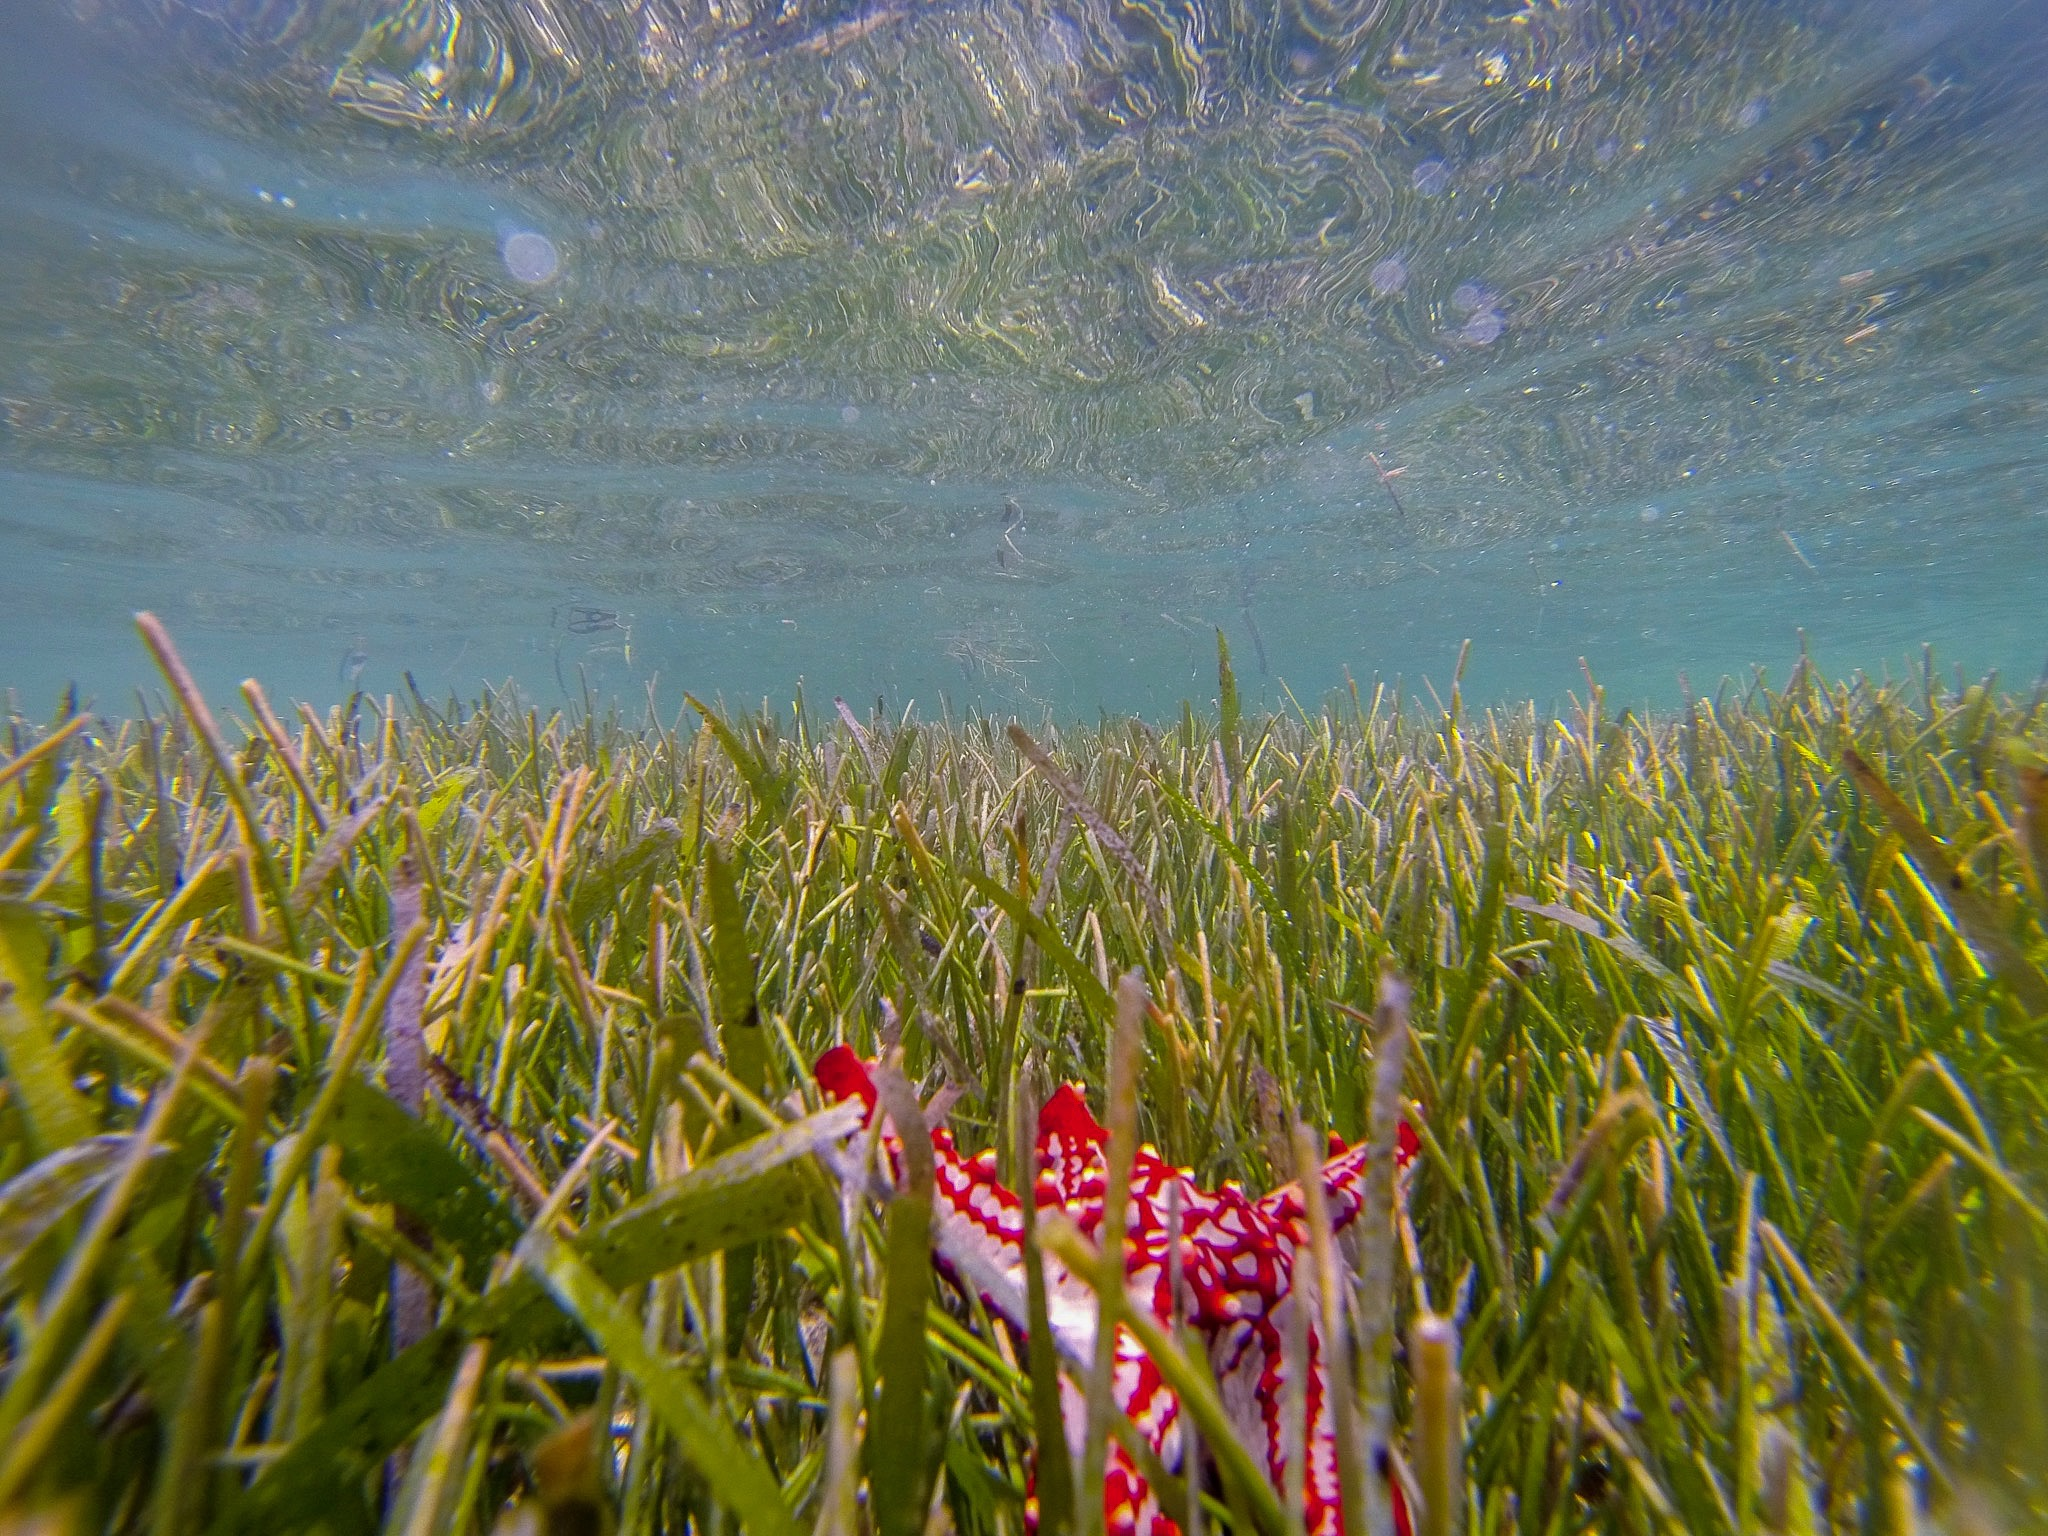 Seagrass is not algae, but a true flowering plant. Some of them form dense meadows that can be seen from space. Photo: @ritasteyn